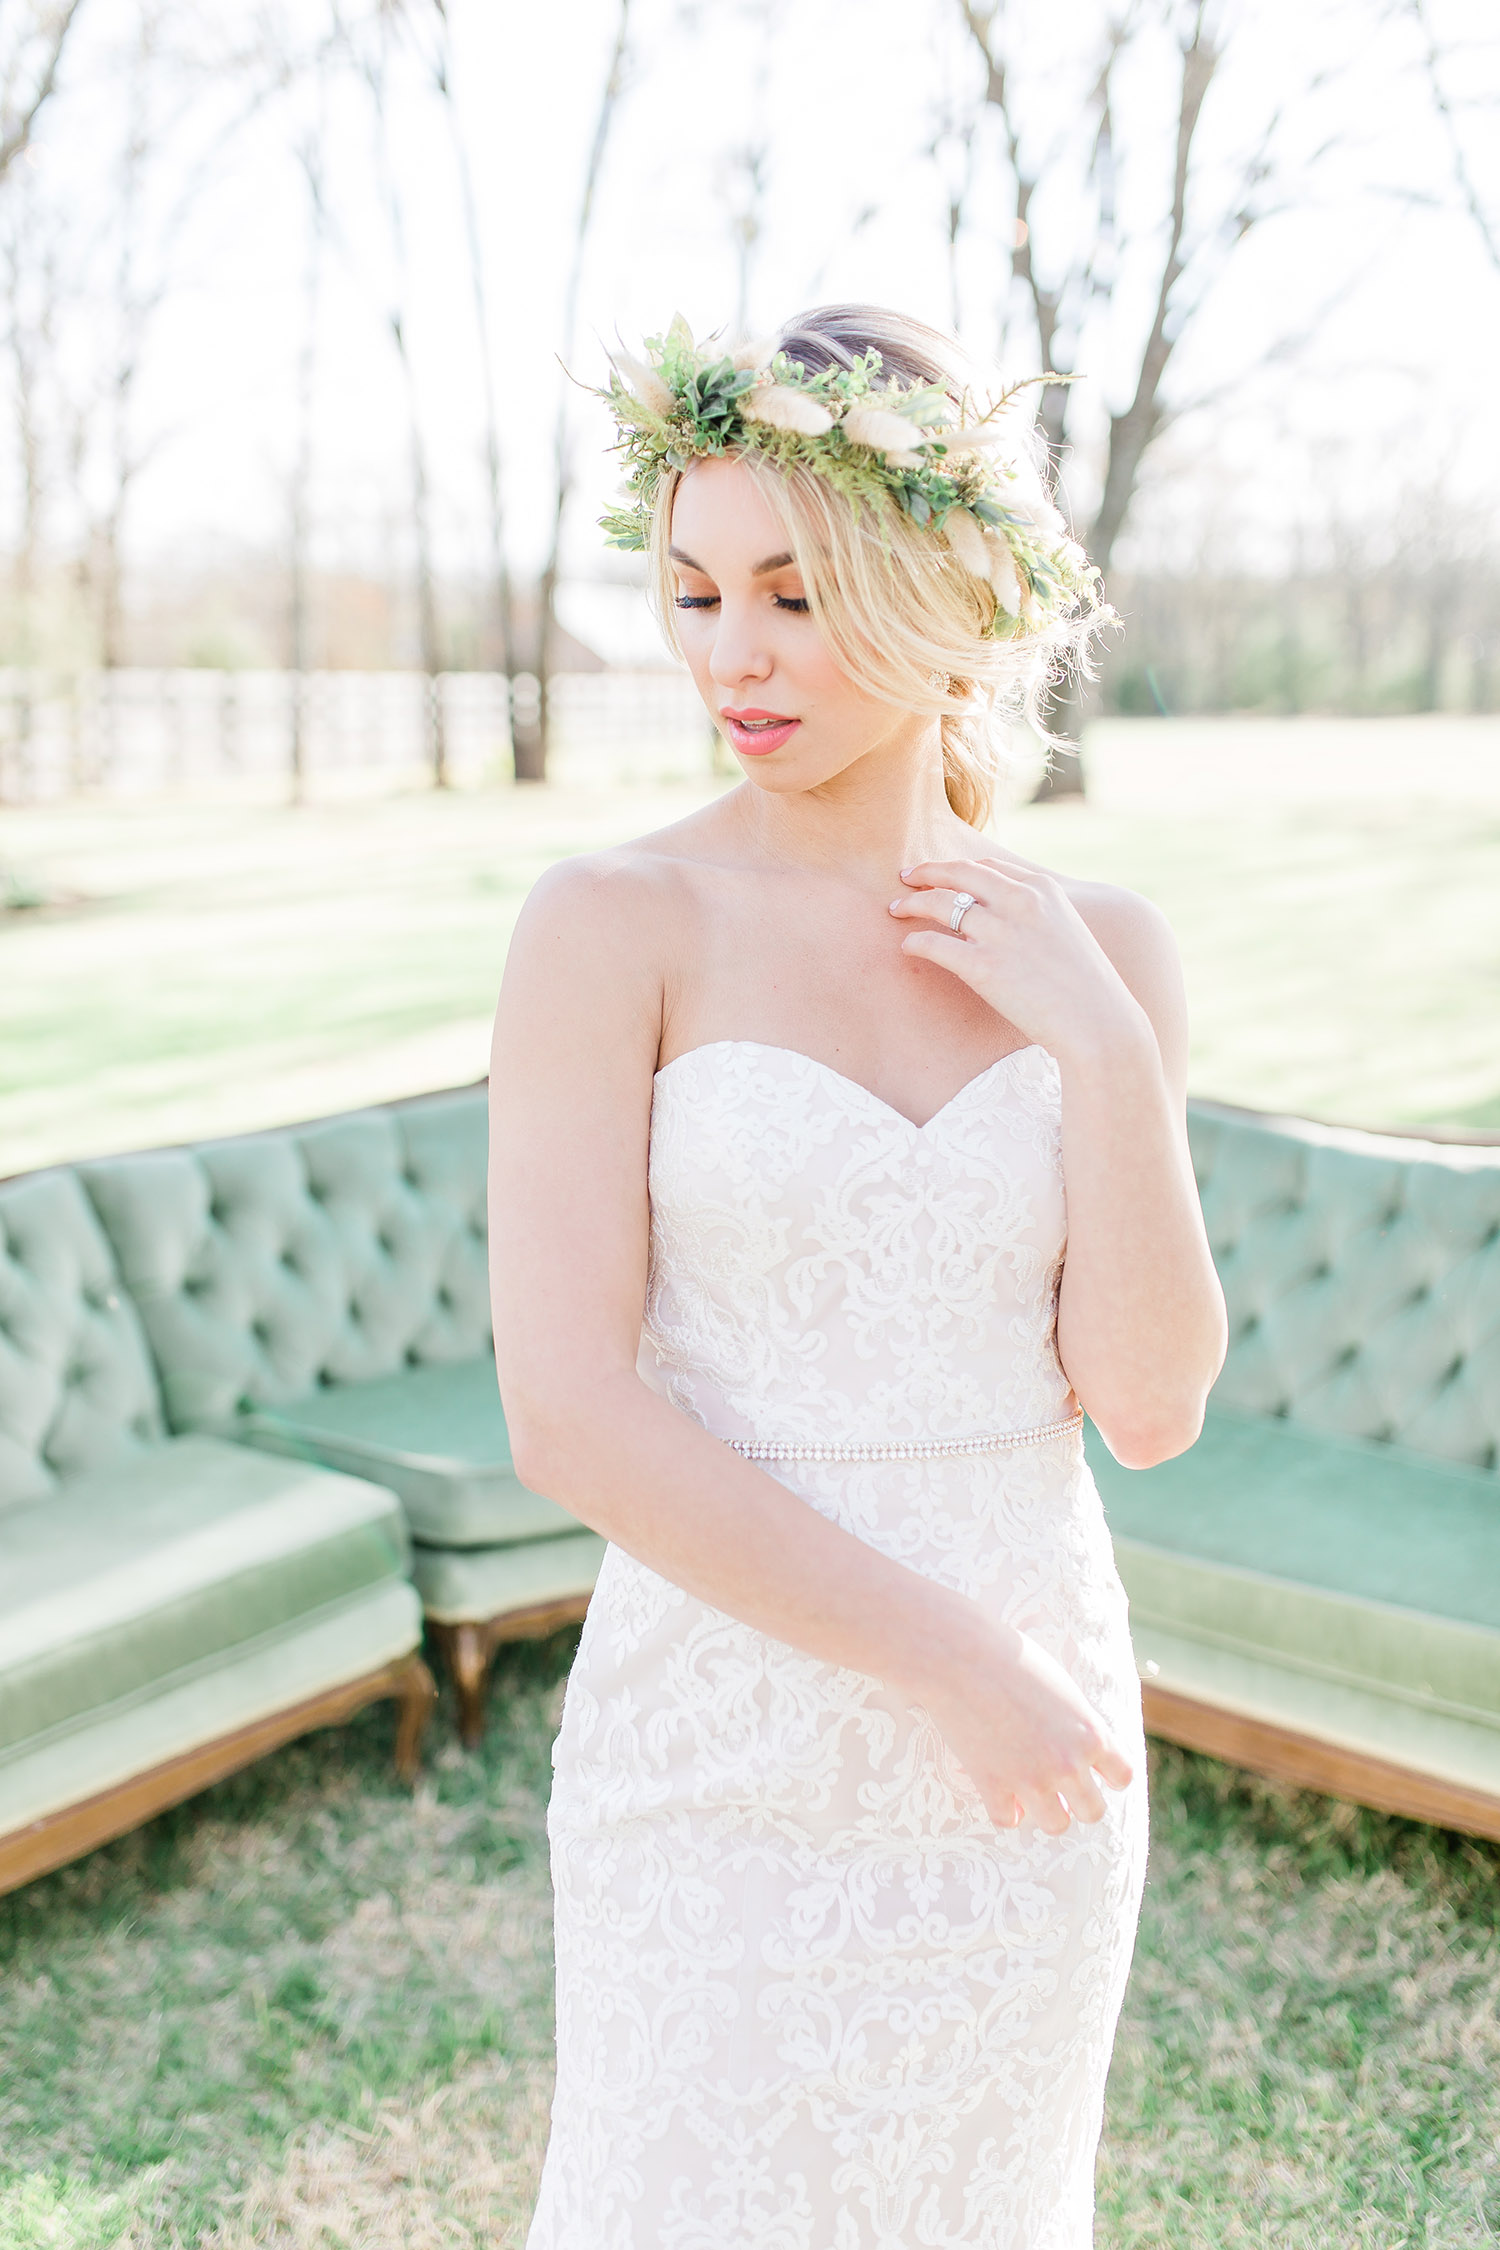 Hannah Way Photography, The White Sparrow, Luxury wedding, luxury wedding photographer